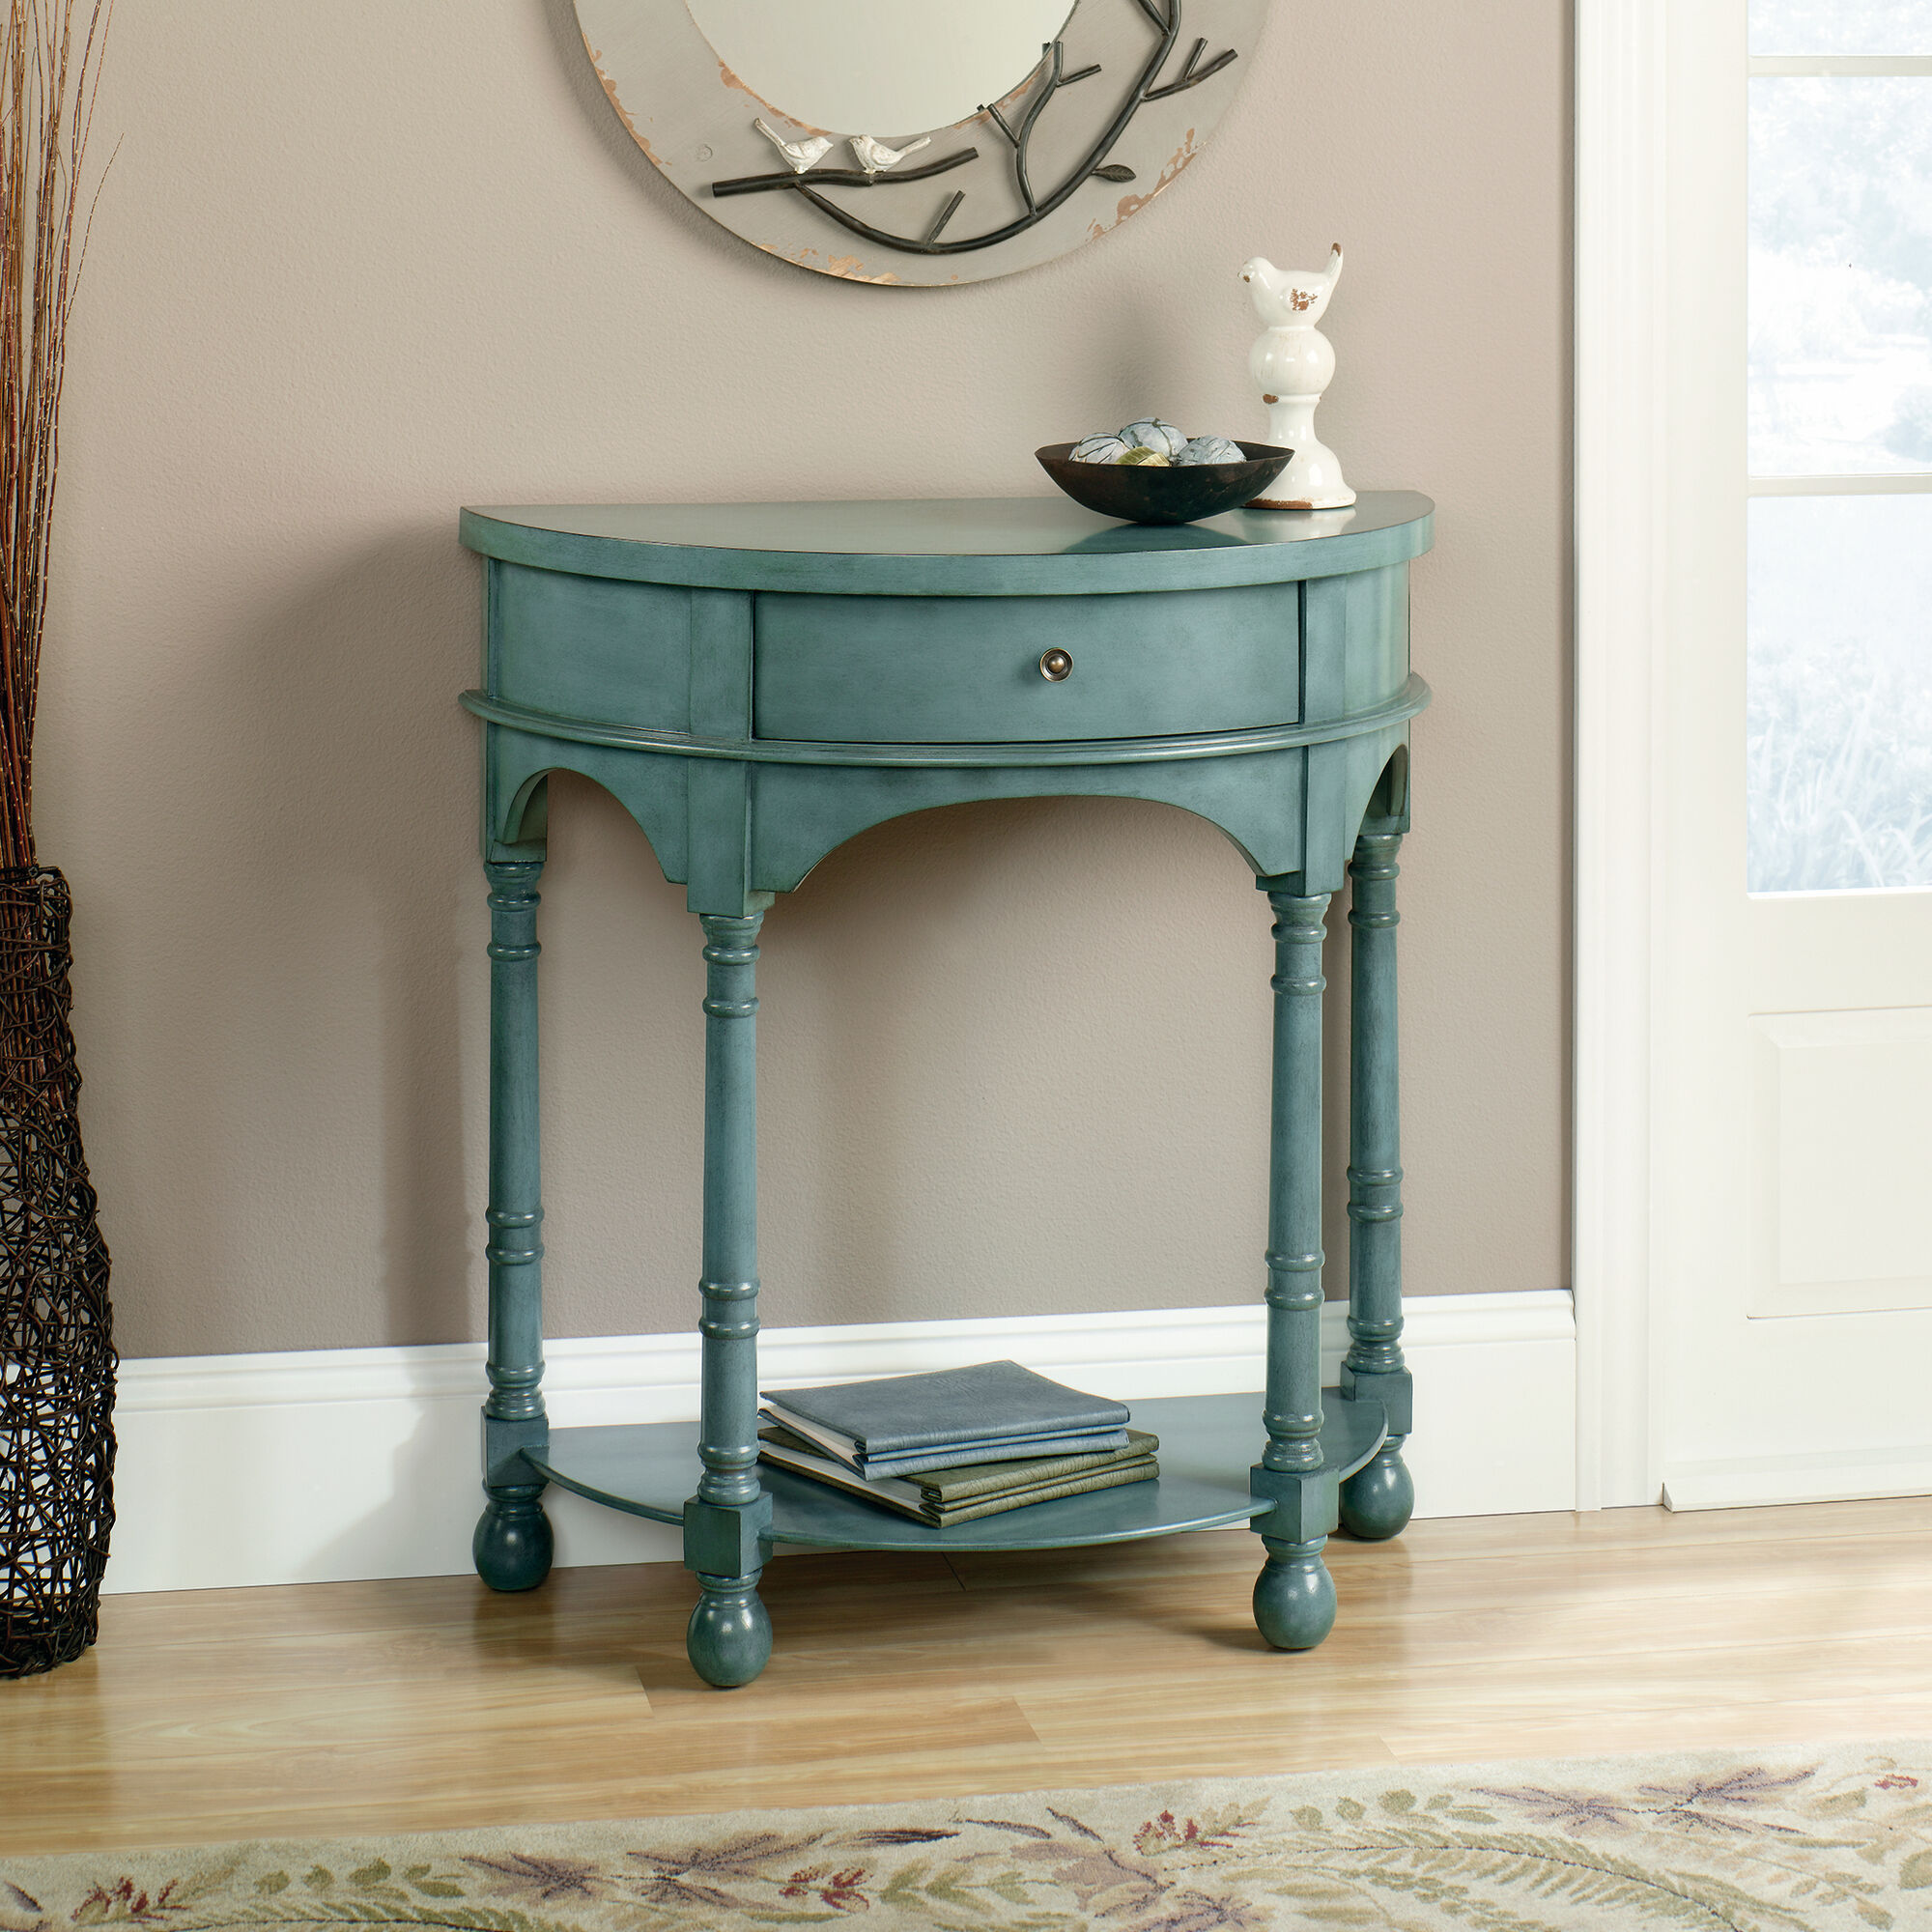 Conran Solid Oak Living Room Furniture Side End Lamp Table: Solid Wood Demilune Accent Table In Antique Teal